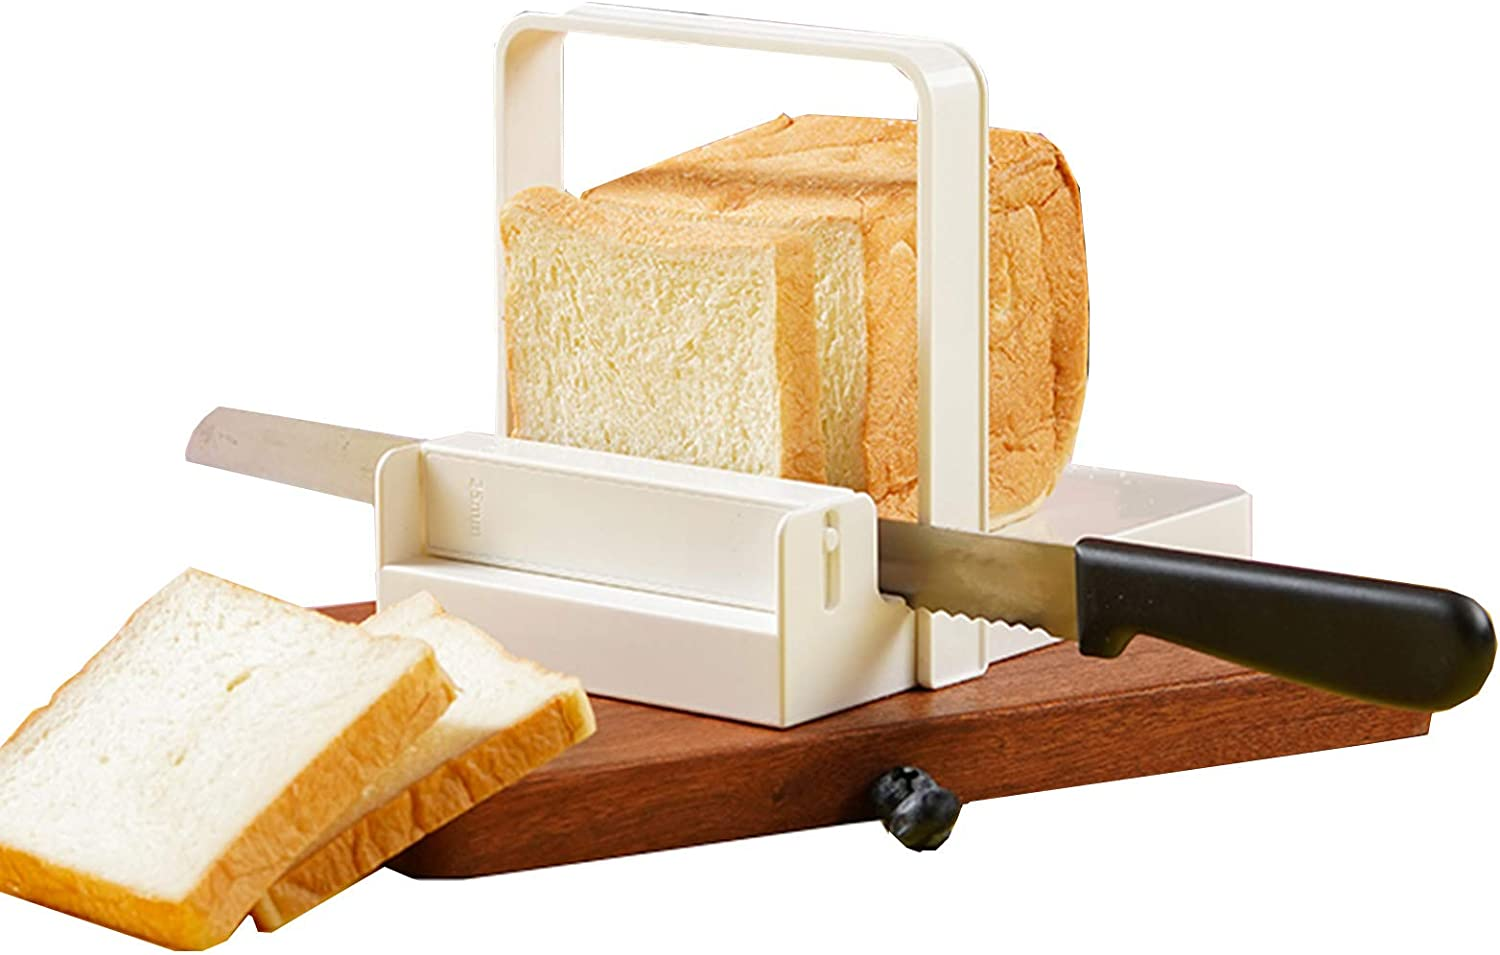 RP Bread Slicer Boards Foldable Max 61% OFF Max 61% OFF for Homemade Toast